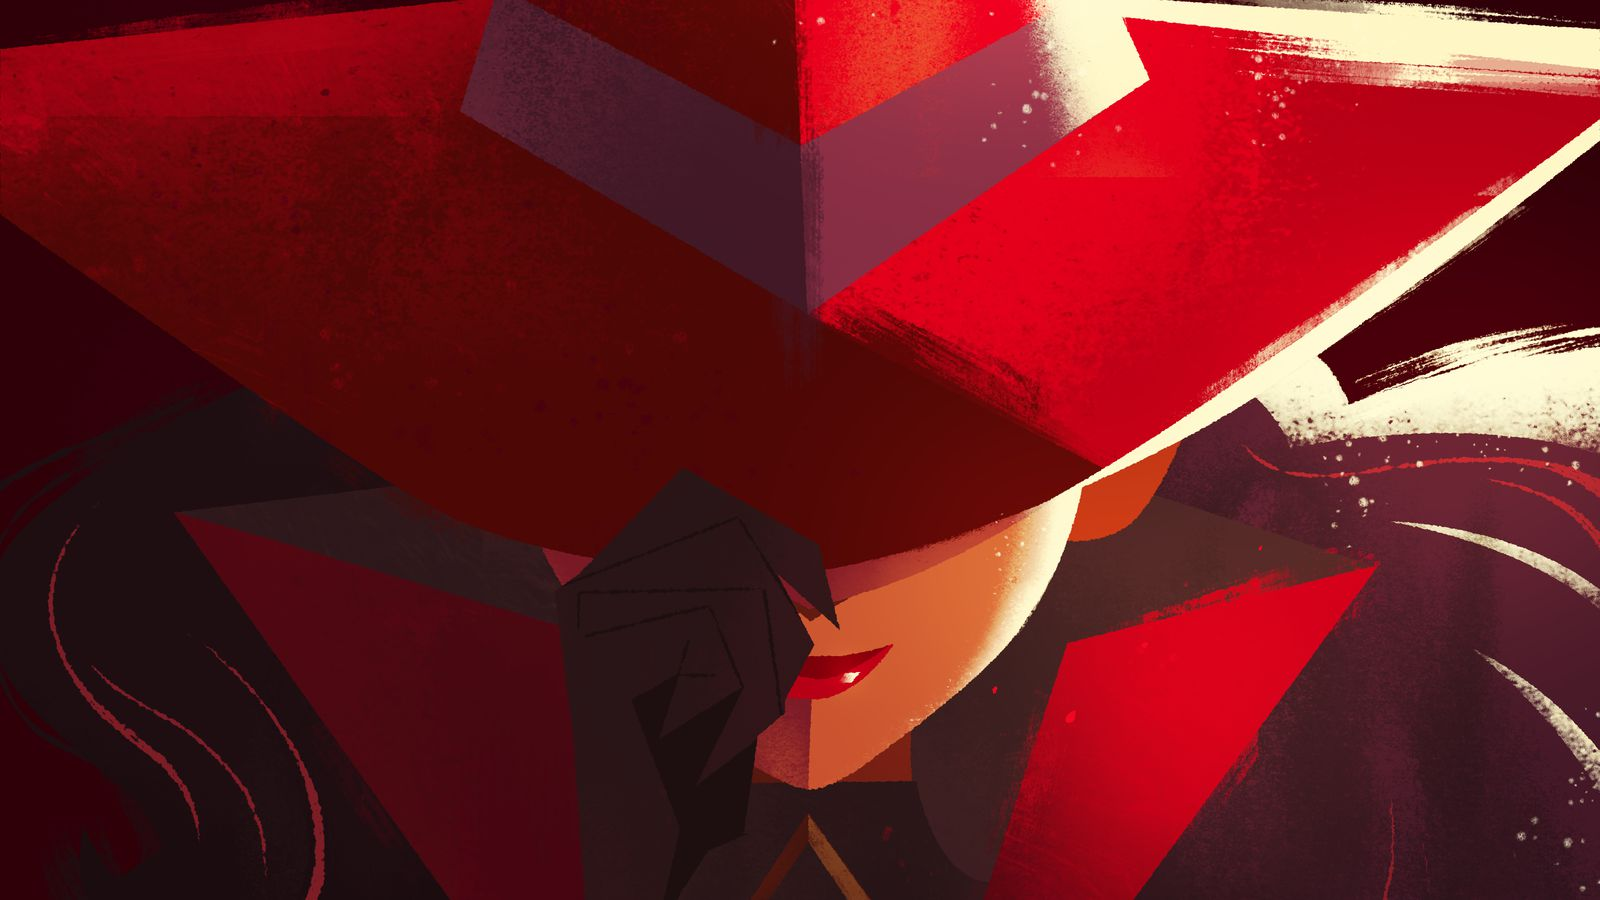 Carmen Sandiego is returning as an animated children's show on Netflix